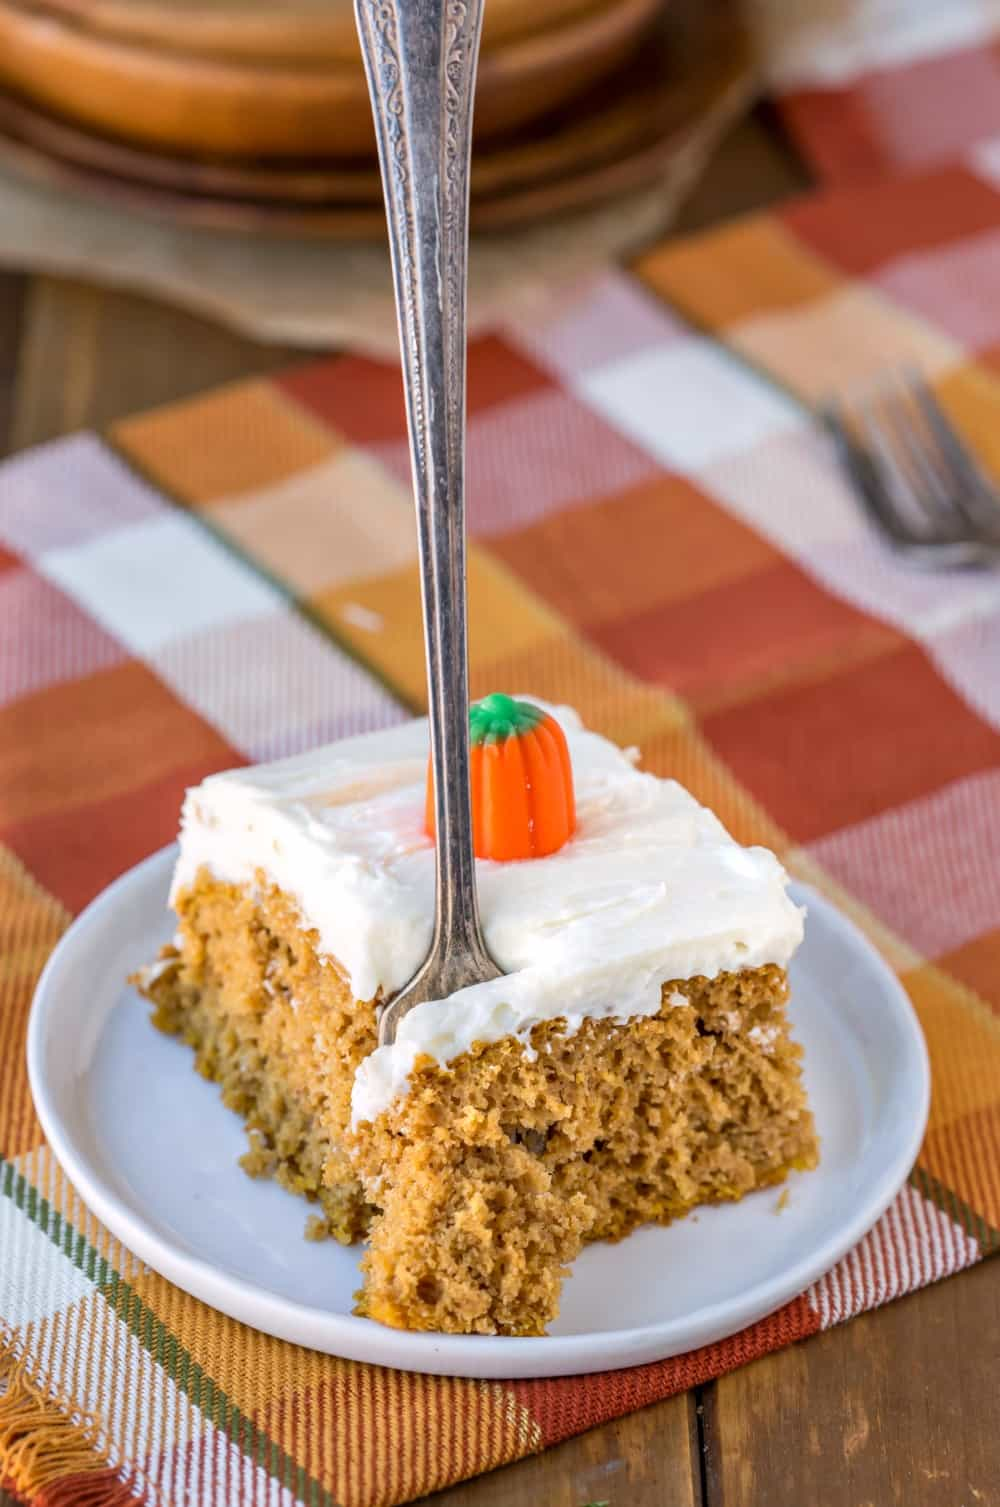 Slice of Pumpkin Spice Cake with a fork taking a bite out of it